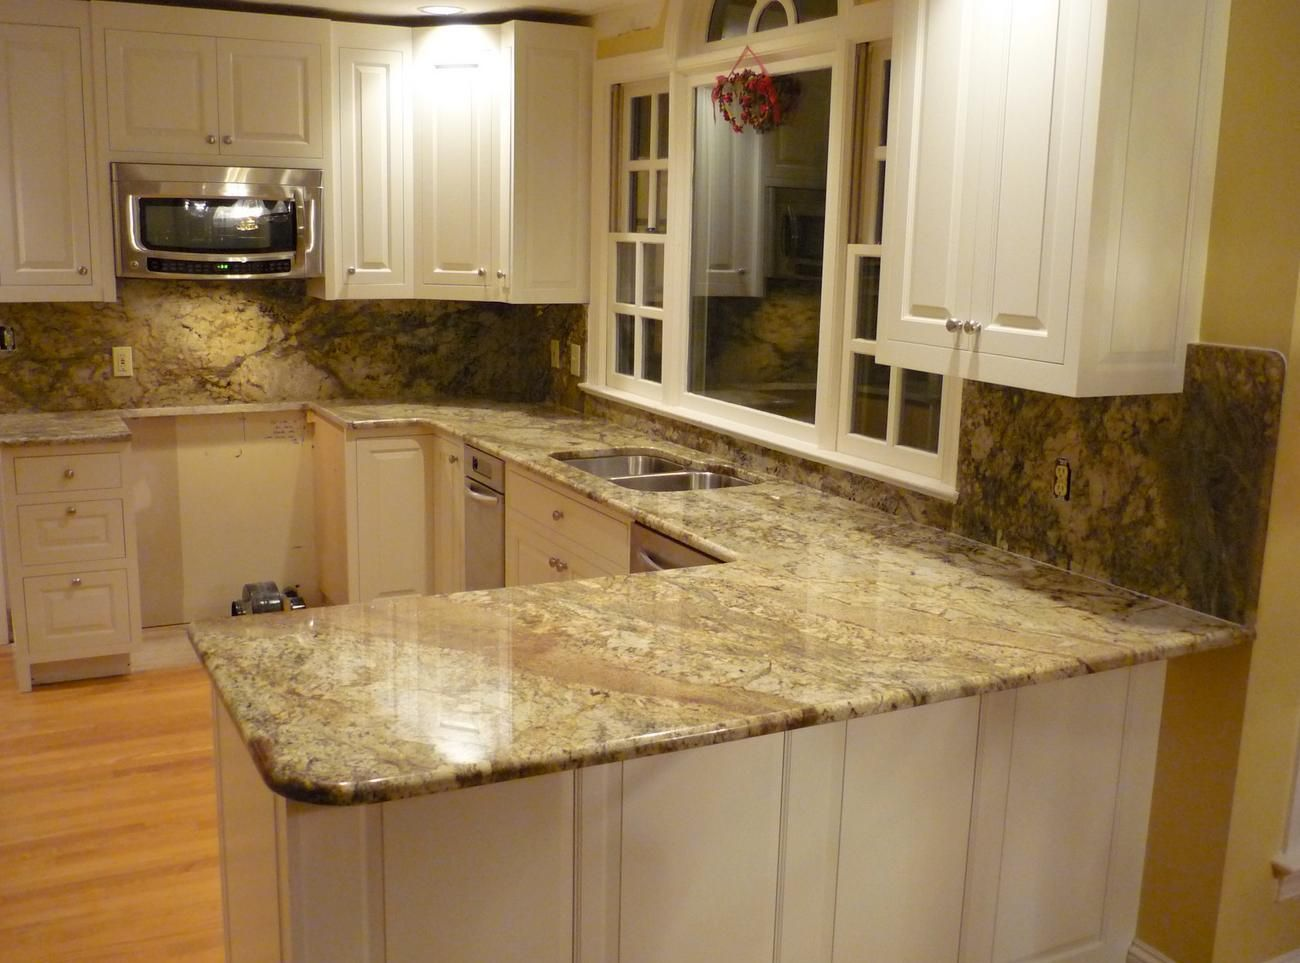 Laminate Countertops That Look Like Granite Cooking Setting Up The Table Washing Dishes